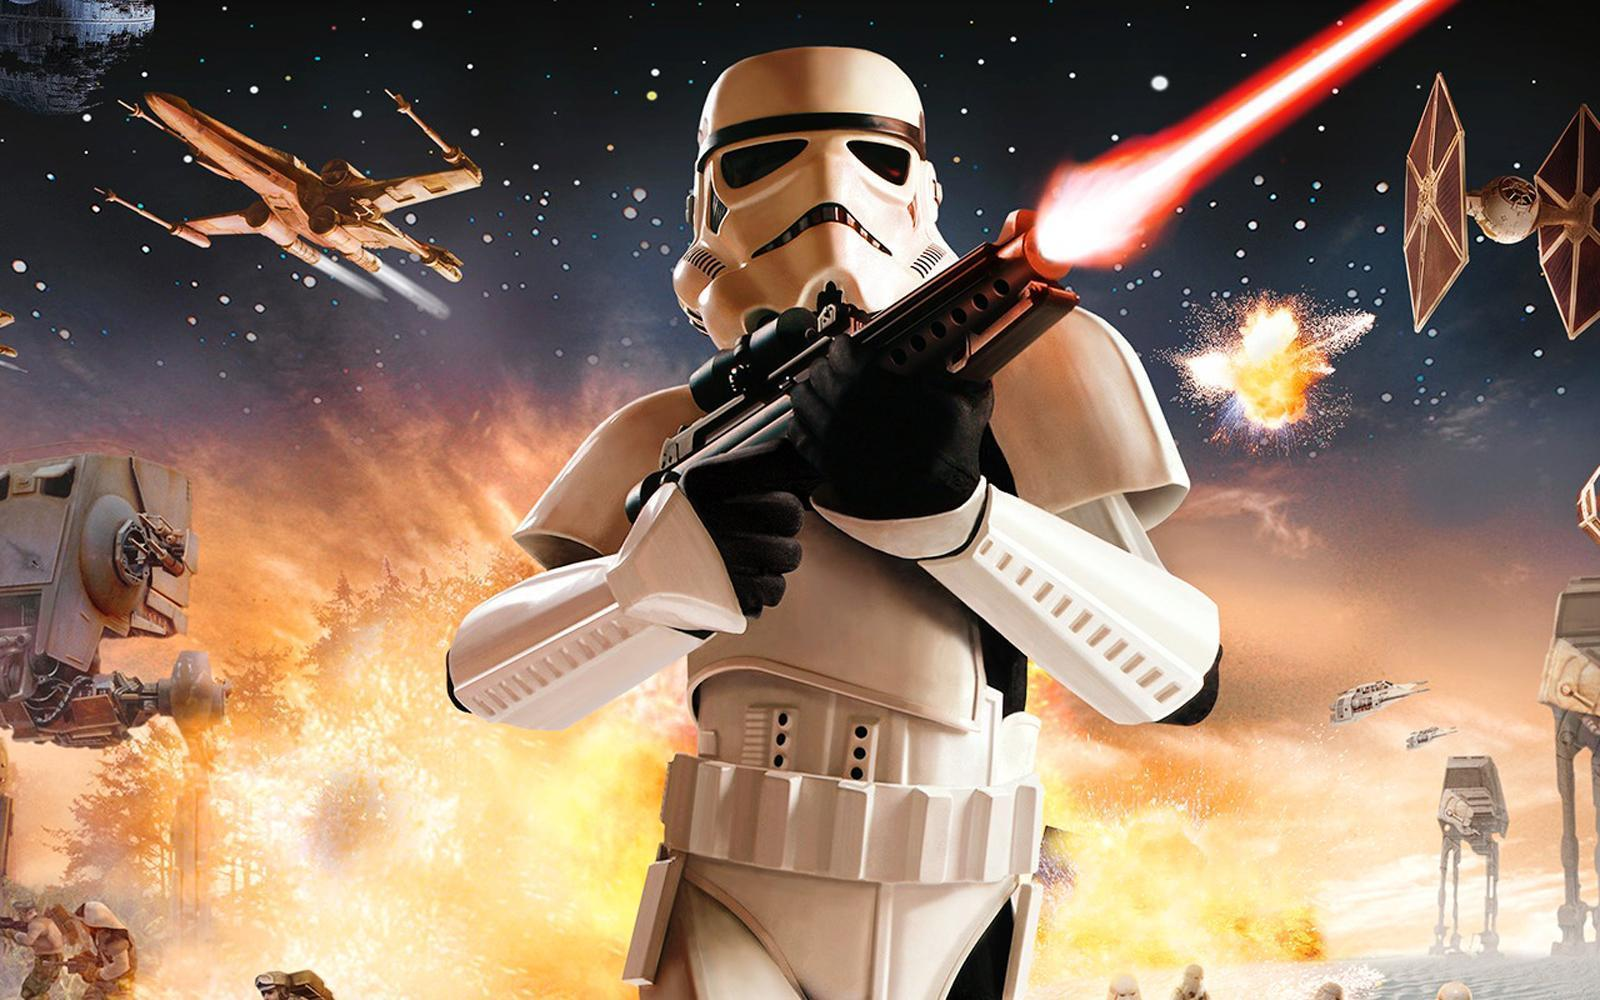 Central Wallpaper: Stormtroopers Star Wars HD Wallpapers